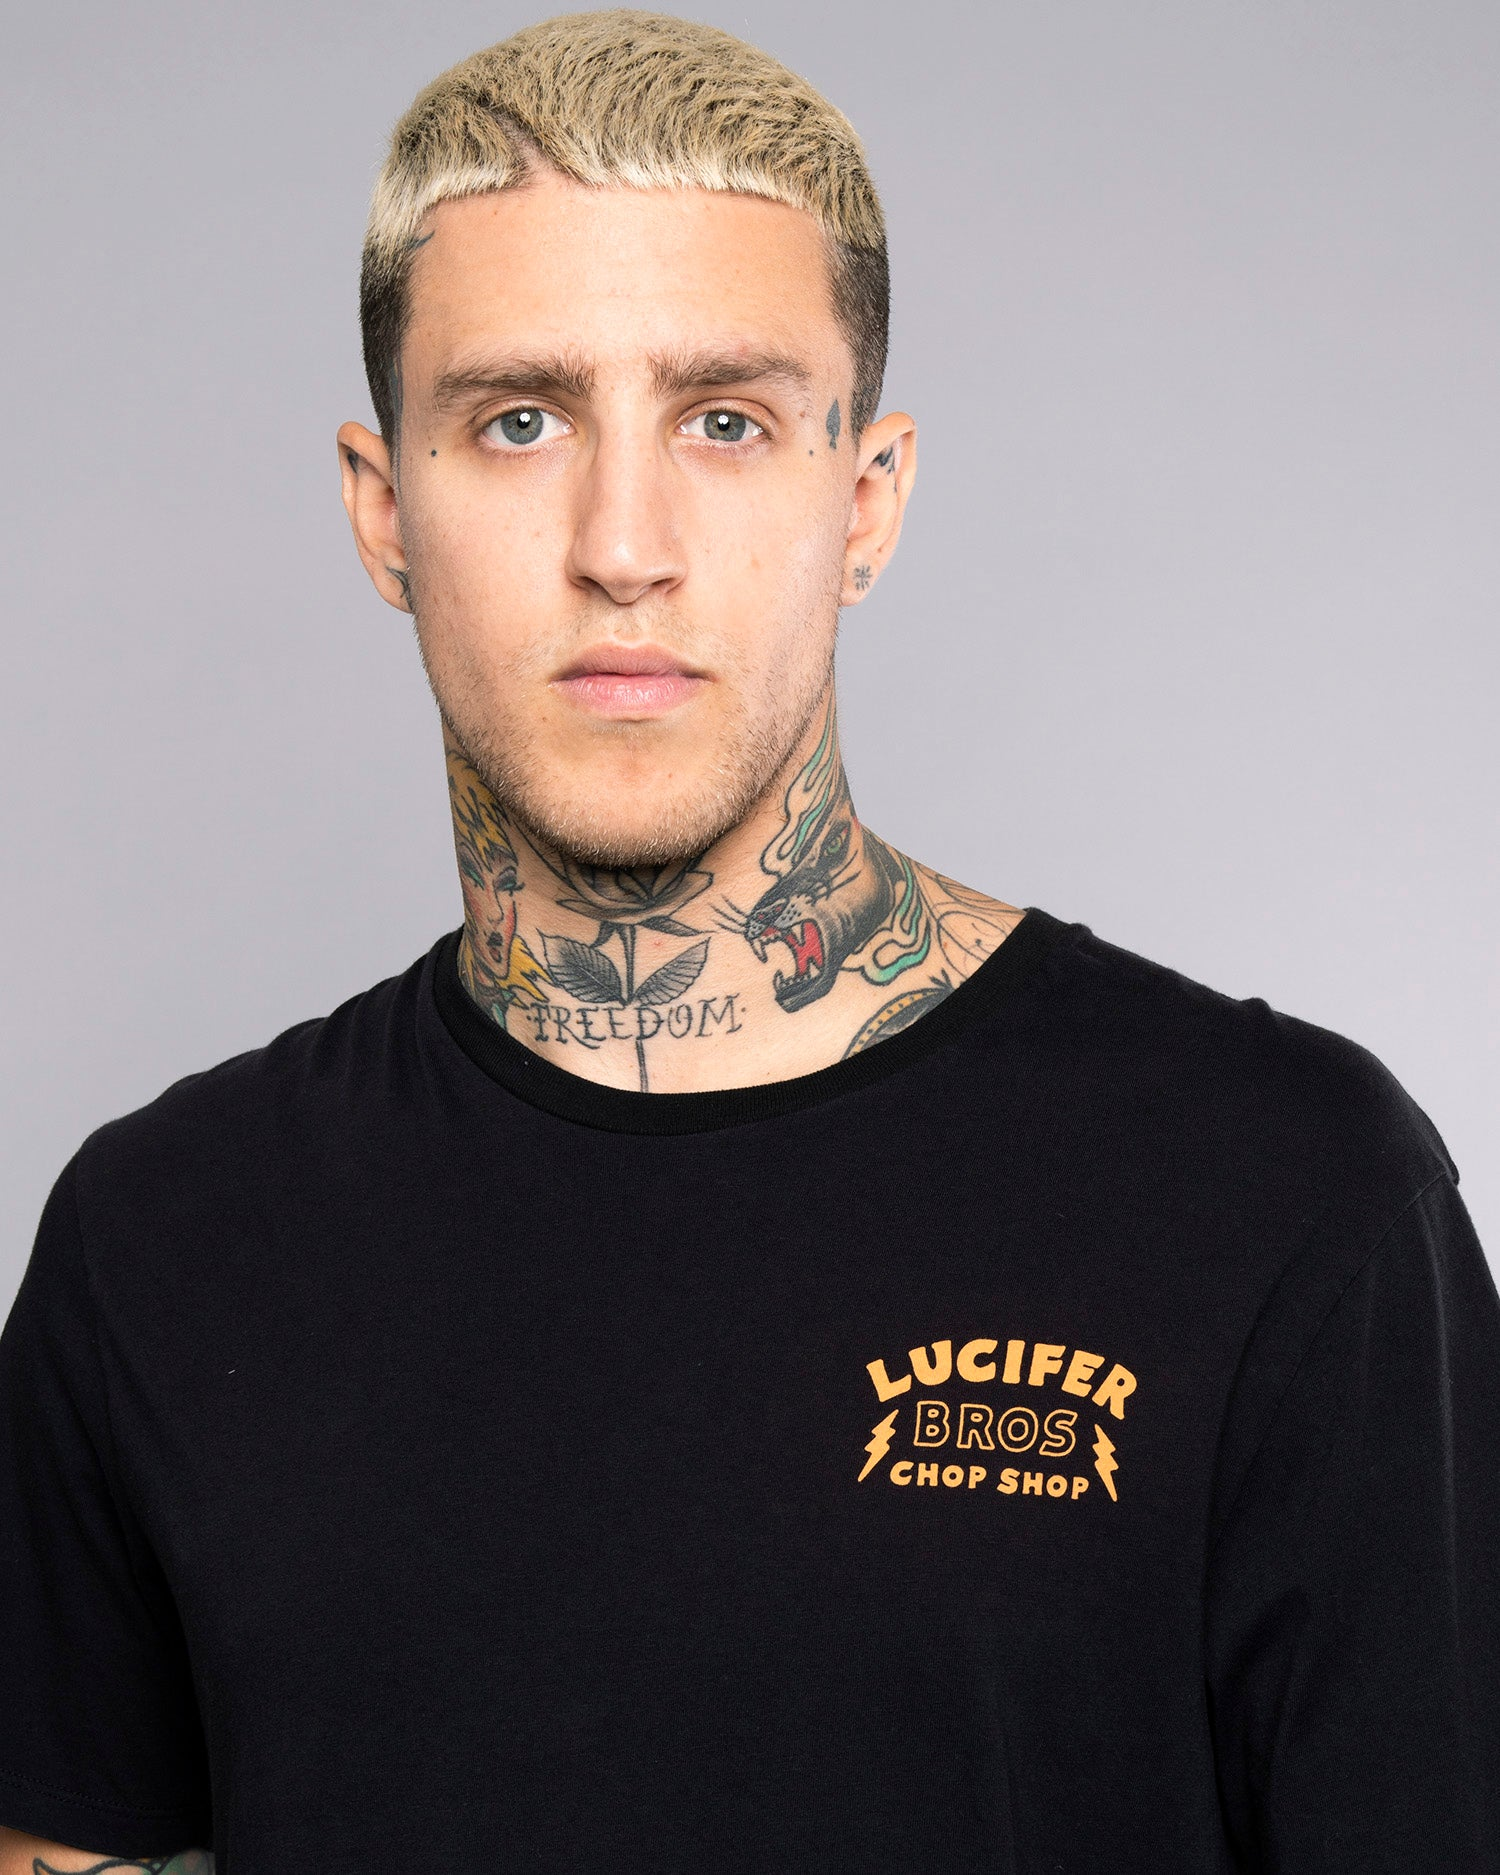 Lucifer Bros Black Printed Tshirt